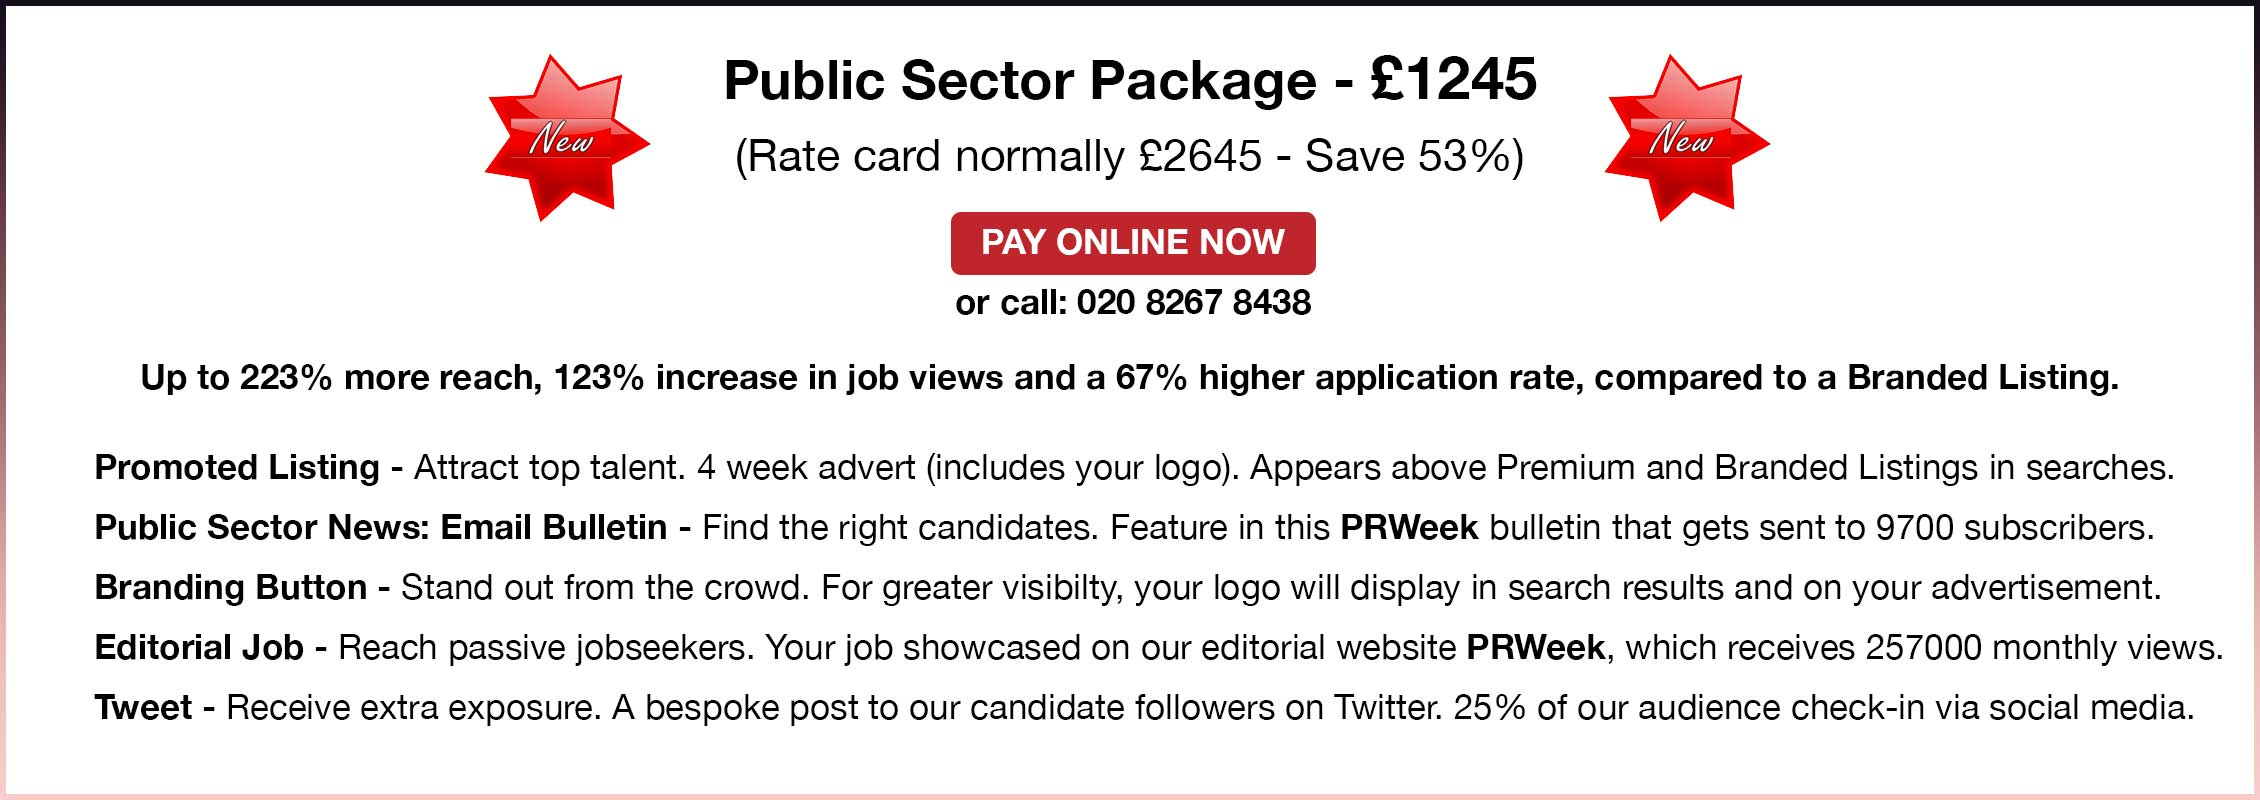 Public Sector Package. £1245. Rate card normally £2645 - Save 53%. Pay Online Now or call 02082678438. 223% more reach. 123% more job views. 67% higher applications. Compared to a Branded Listing. Promoted Listing - Attract top talent. 4 week advert (includes your logo). Appears above Premium and Branded Listings in searches. Public Sector News: Email Bulletin - Find the right candidates. Feature in this PRWeek bulletin that gets sent to 9700 subscribers. Branding Button - Stand out from the crowd. Your logo will display in search results and on your advertisement. Editorial Job - Reach passive jobseekers. Your job showcased on our editorial website PRWeek, which receives 257000 monthly views. Tweet - Receive extra exposure. A bespoke post on Twitter. 25% of our audience check-in via social media.